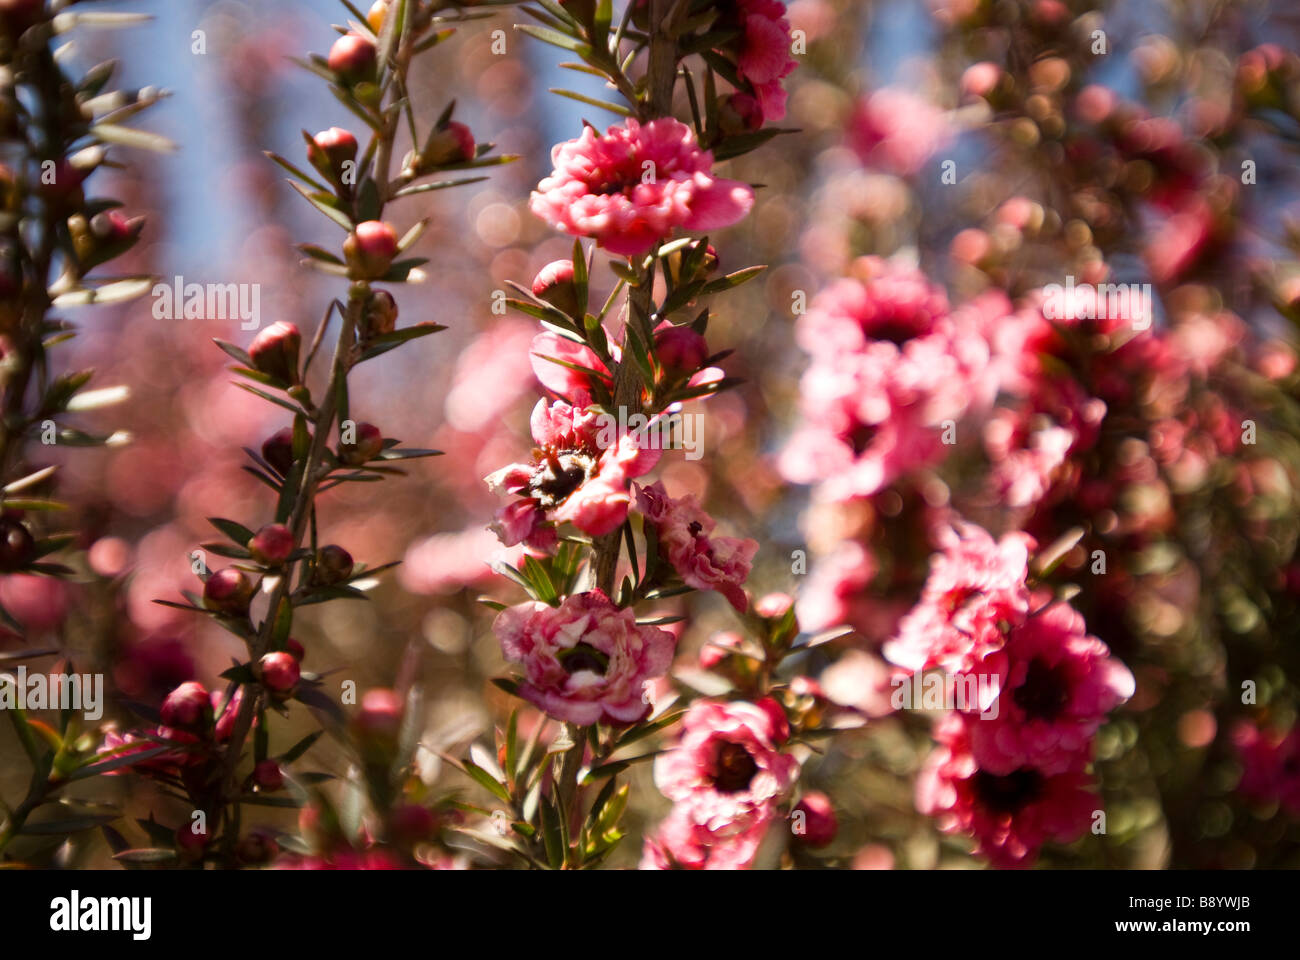 Pink flowers in california - Stock Image